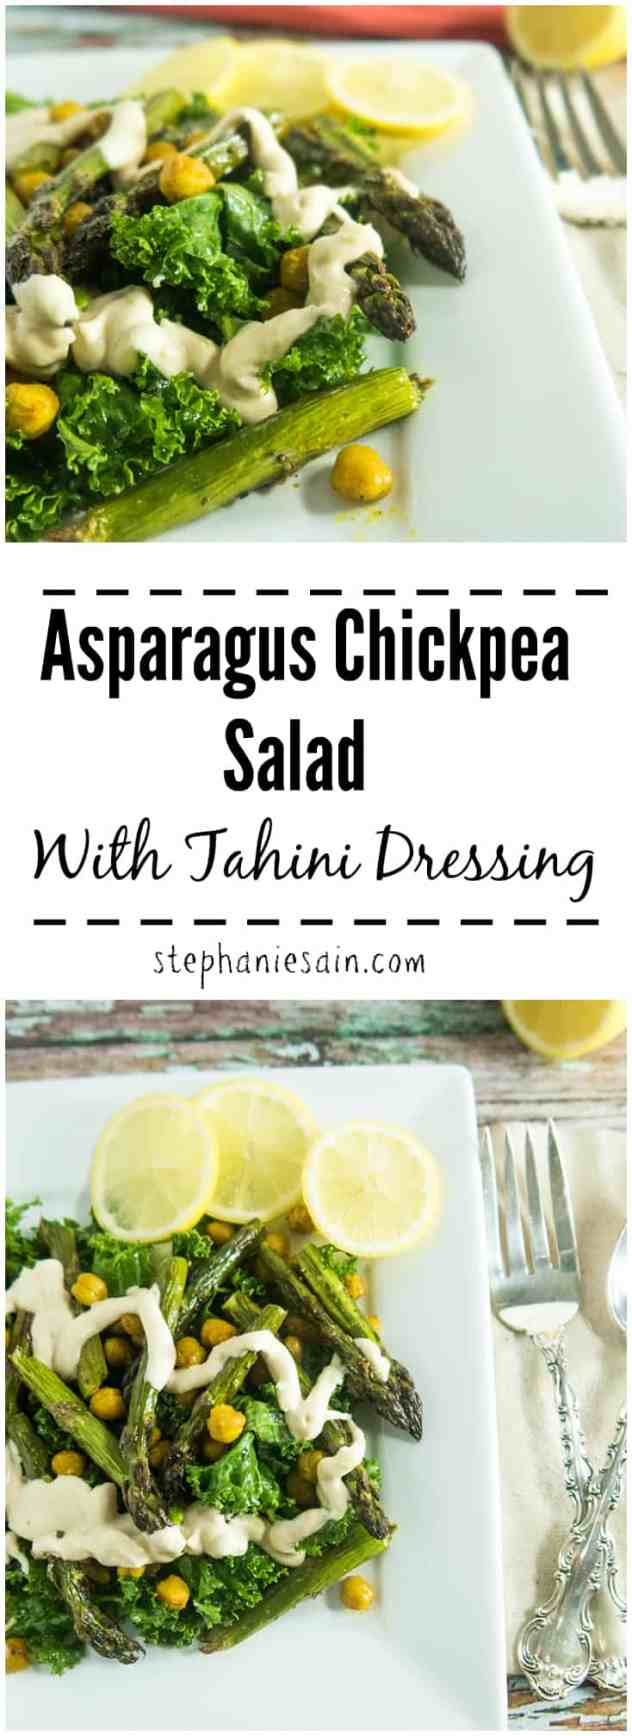 Asparagus Chickpea Salad with Tahini Dressing is an easy, tasty, one bowl meal loaded with roasted asparagus and turmeric roasted chickpeas. Vegan & Gluten Free.